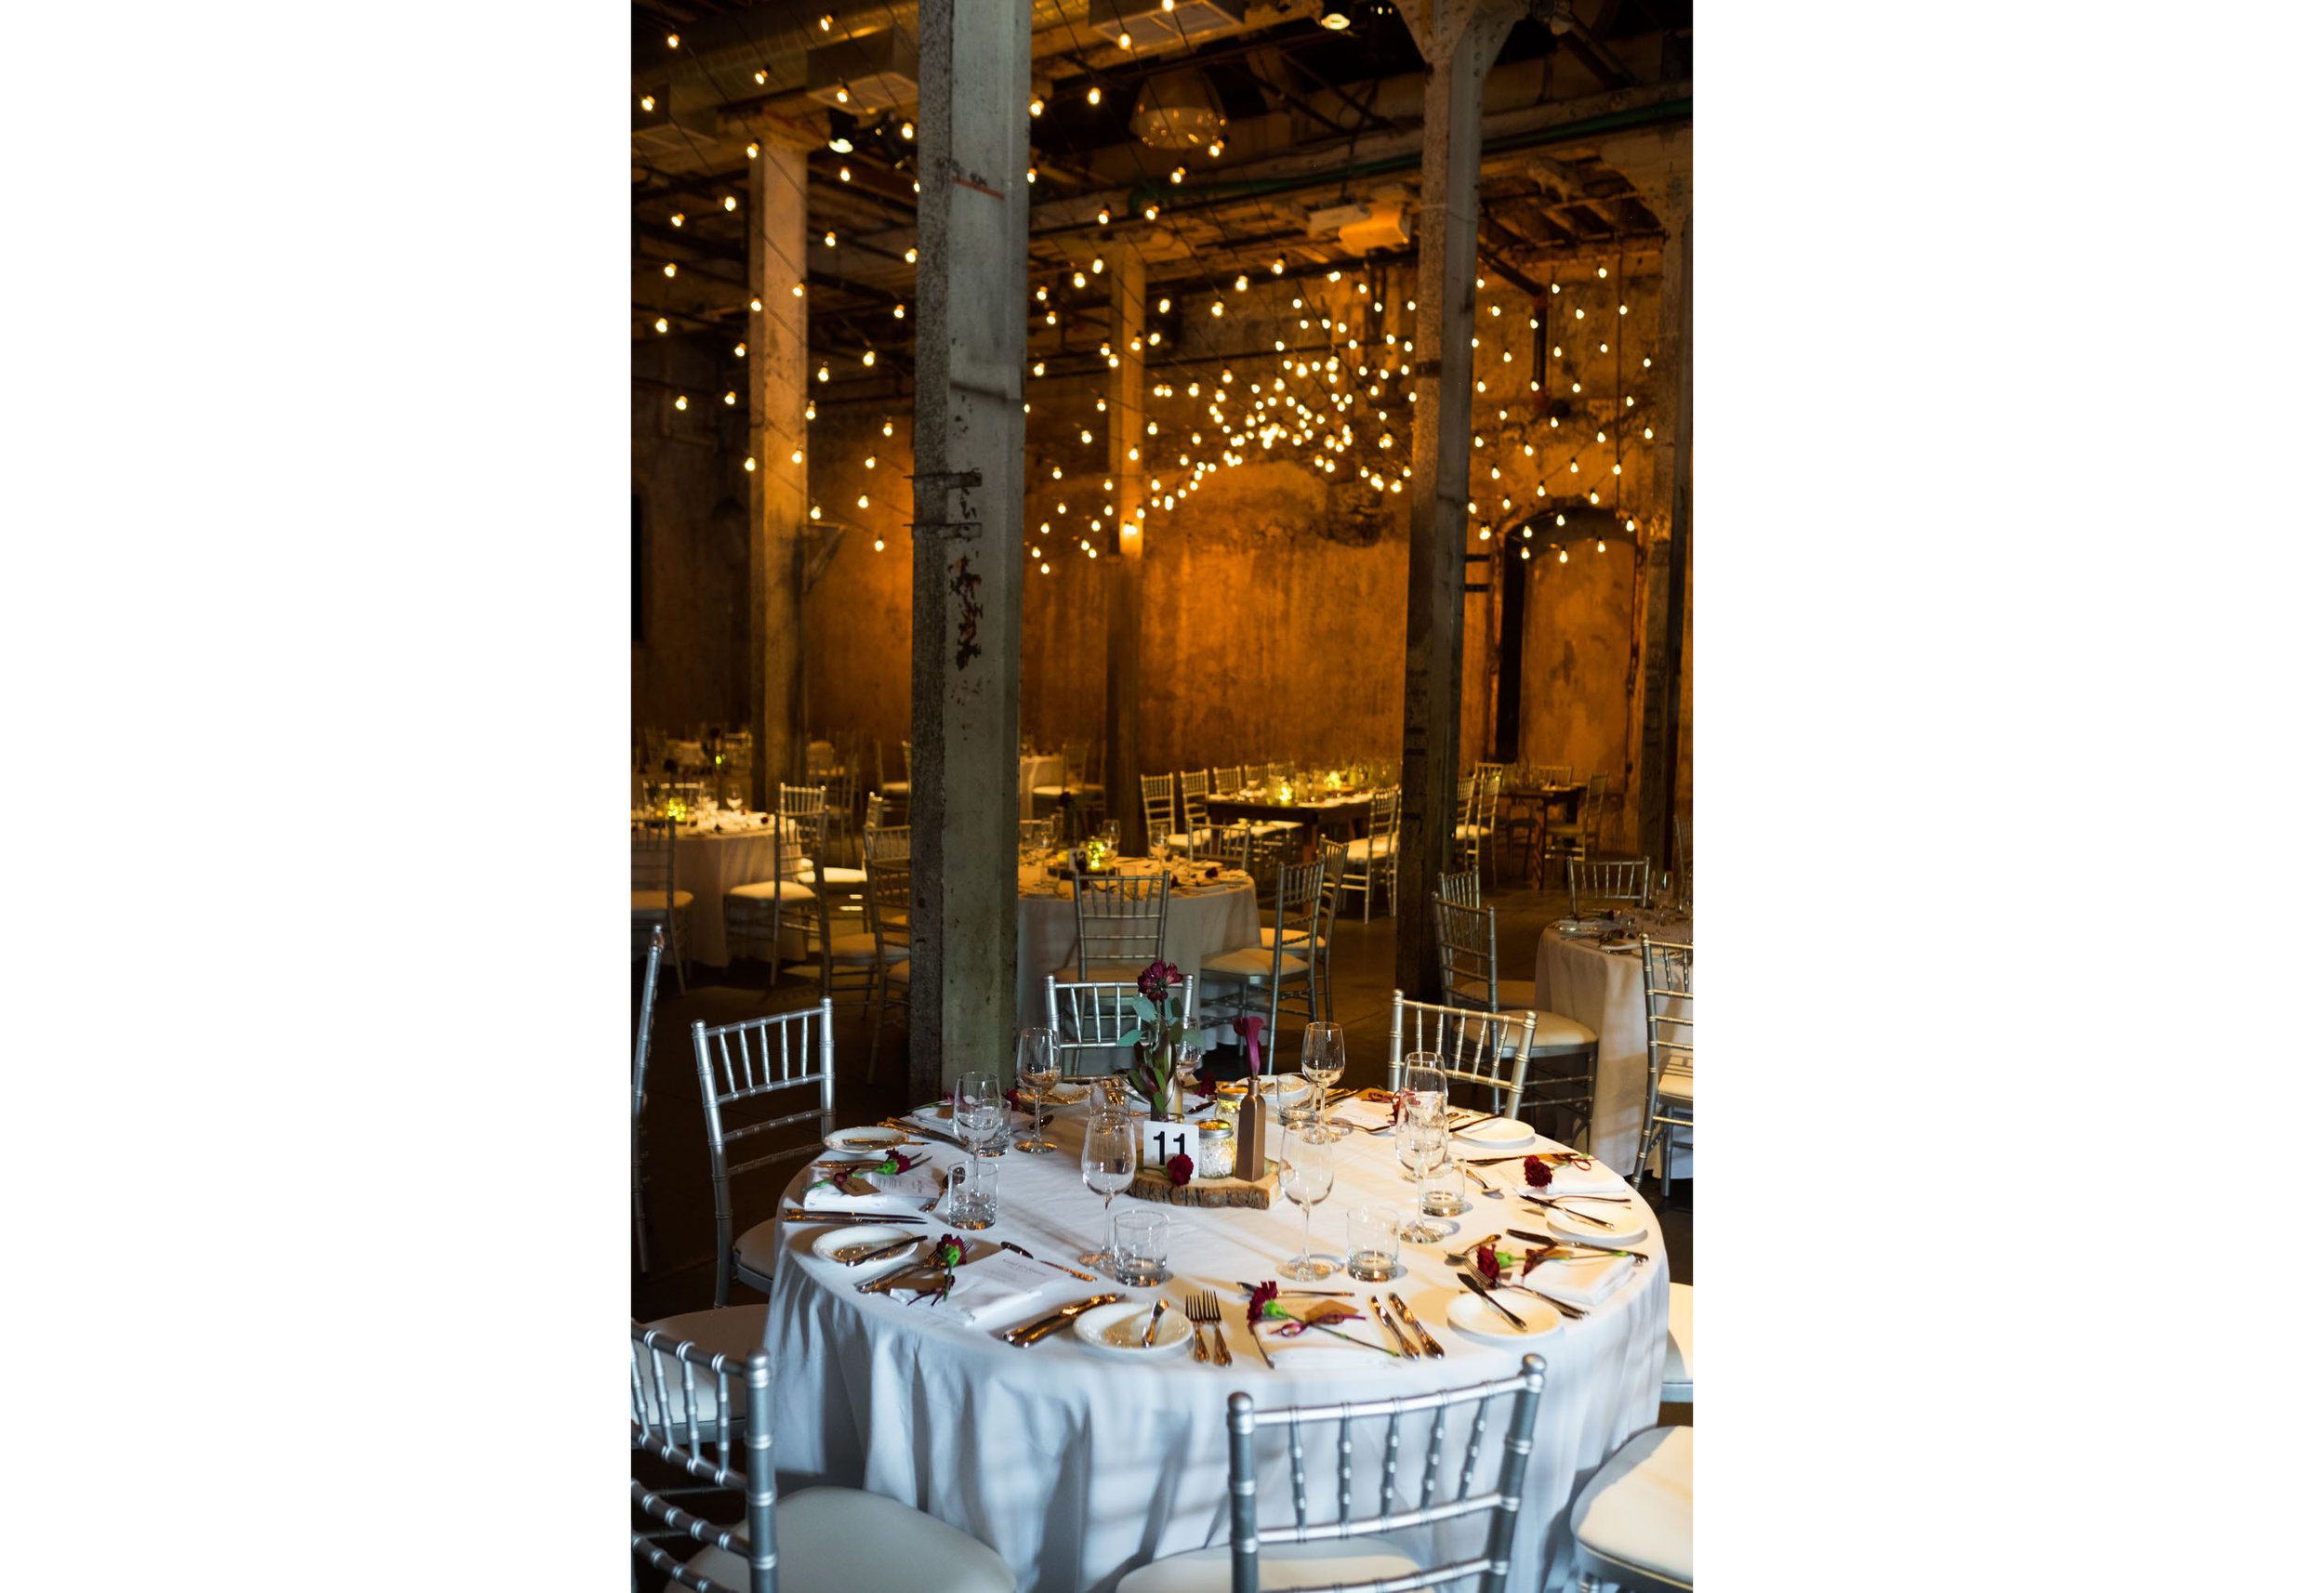 A photograph of the wedding details at Sarah + Konrads wedding at the Fermenting Cellar in Toronto.